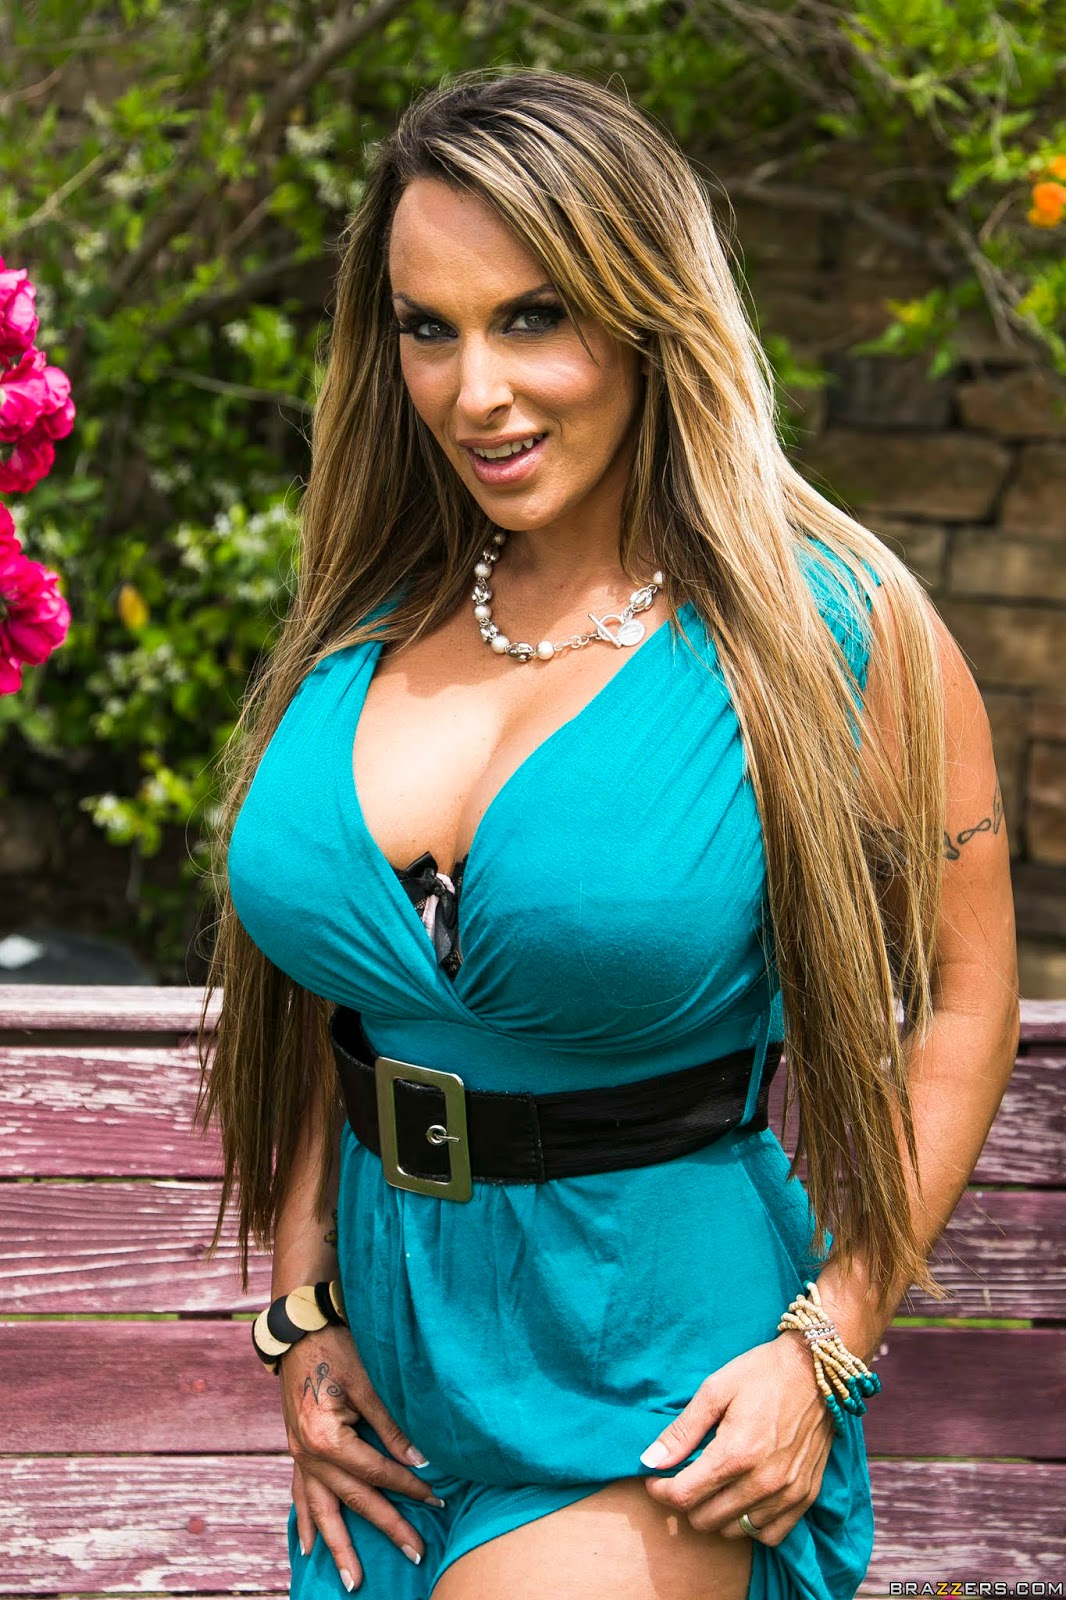 Holly Halston : Ribbon Cunting Ceremony ## BRAZZERS